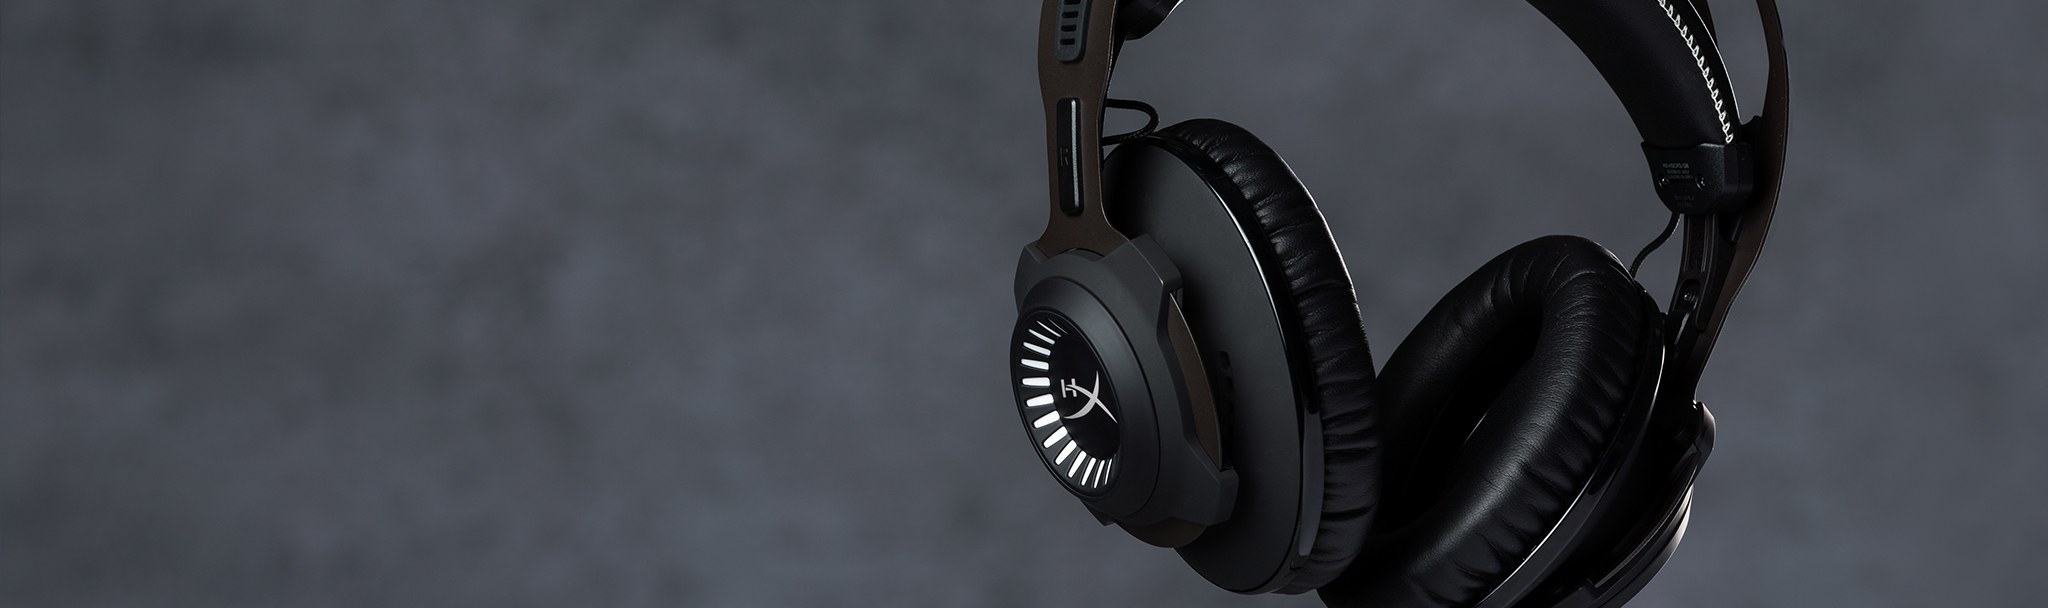 classic 5c6f4 6c18f HyperX Cloud Revolver Review  Gaming Headset - Hear It All